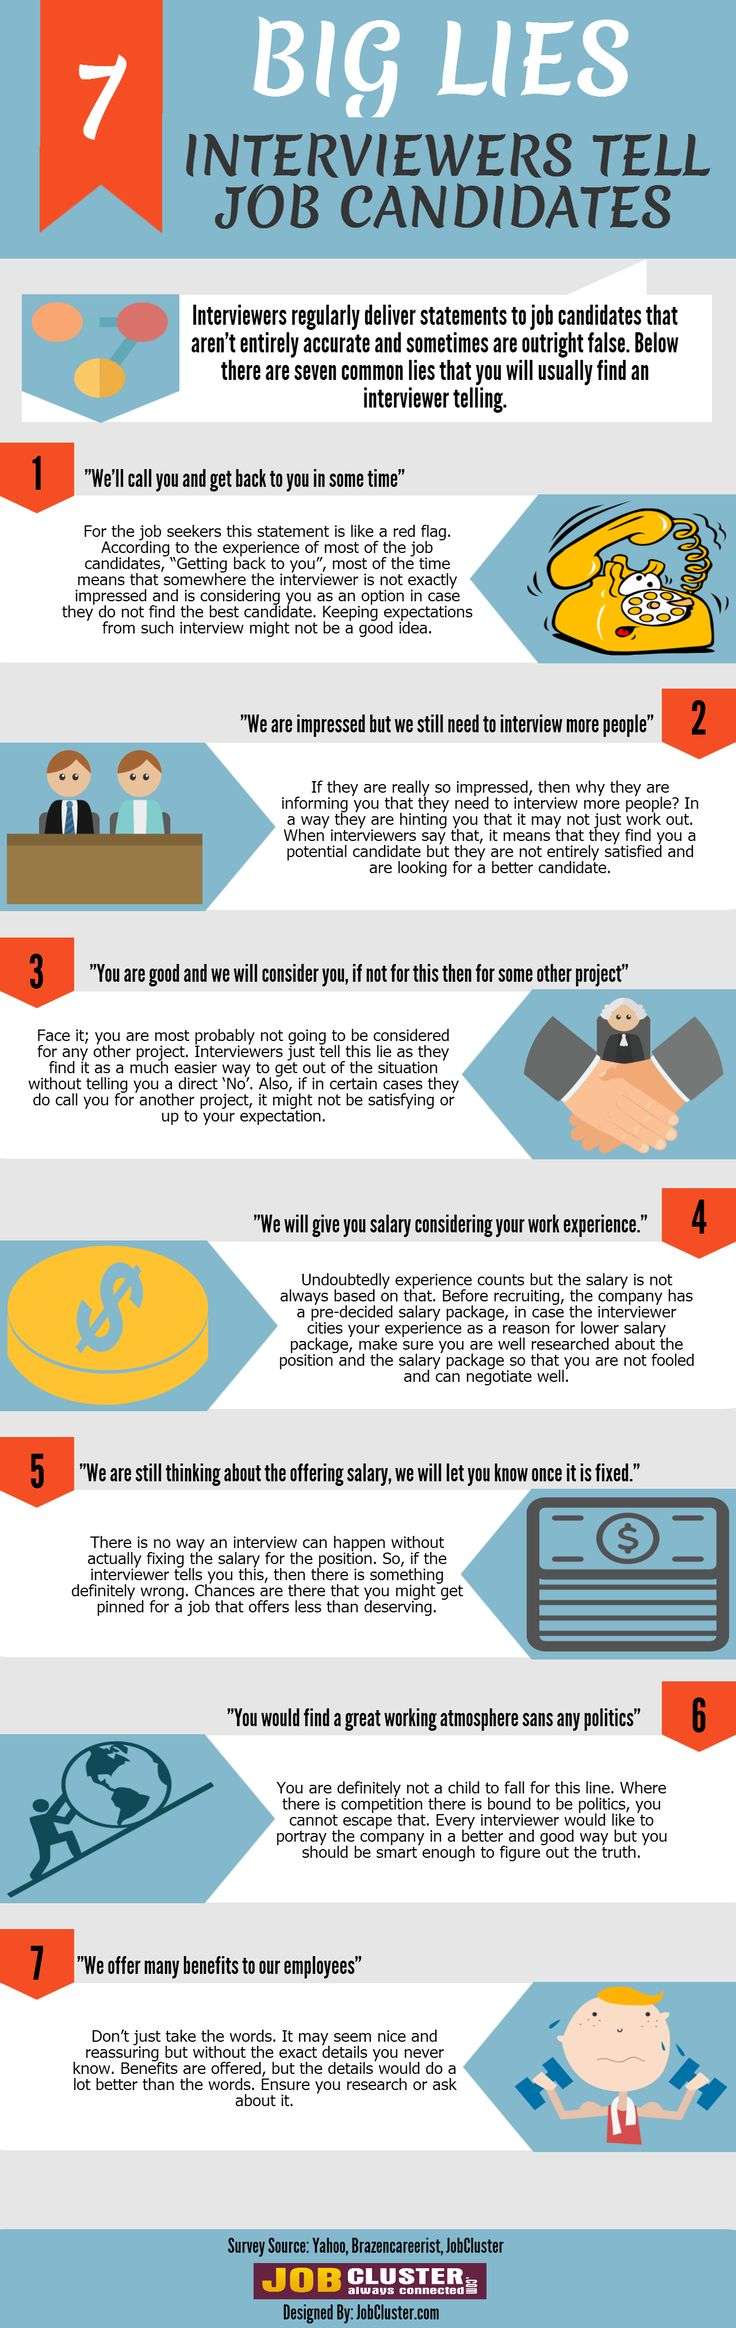 1000 images about interview tips interviewers tells little white lies to job candidates here are seven most common lies interviewers tell job interview resume tips